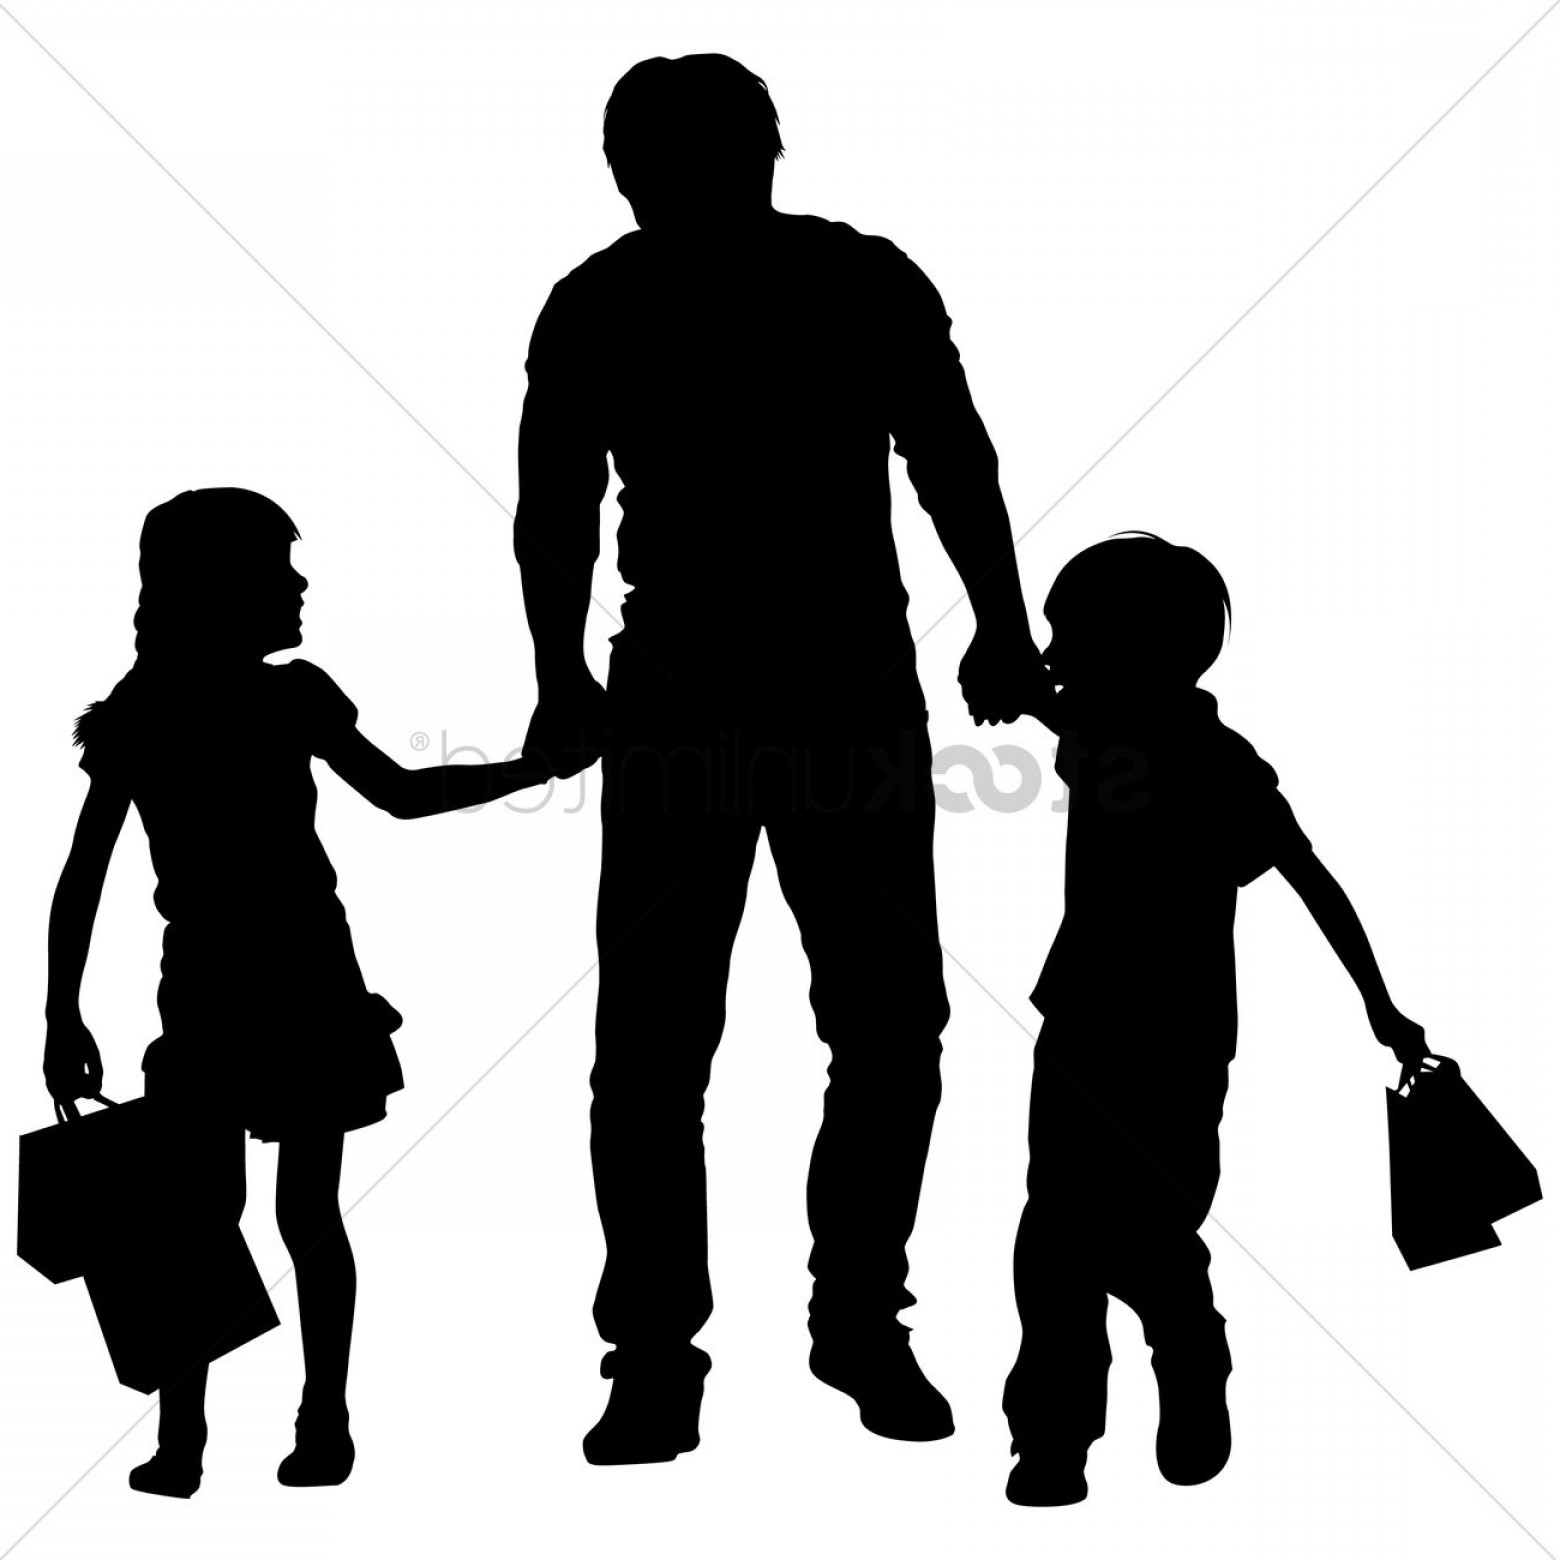 1560x1560 Silhouette Of A Father And Kids Shopping Sohadacouri